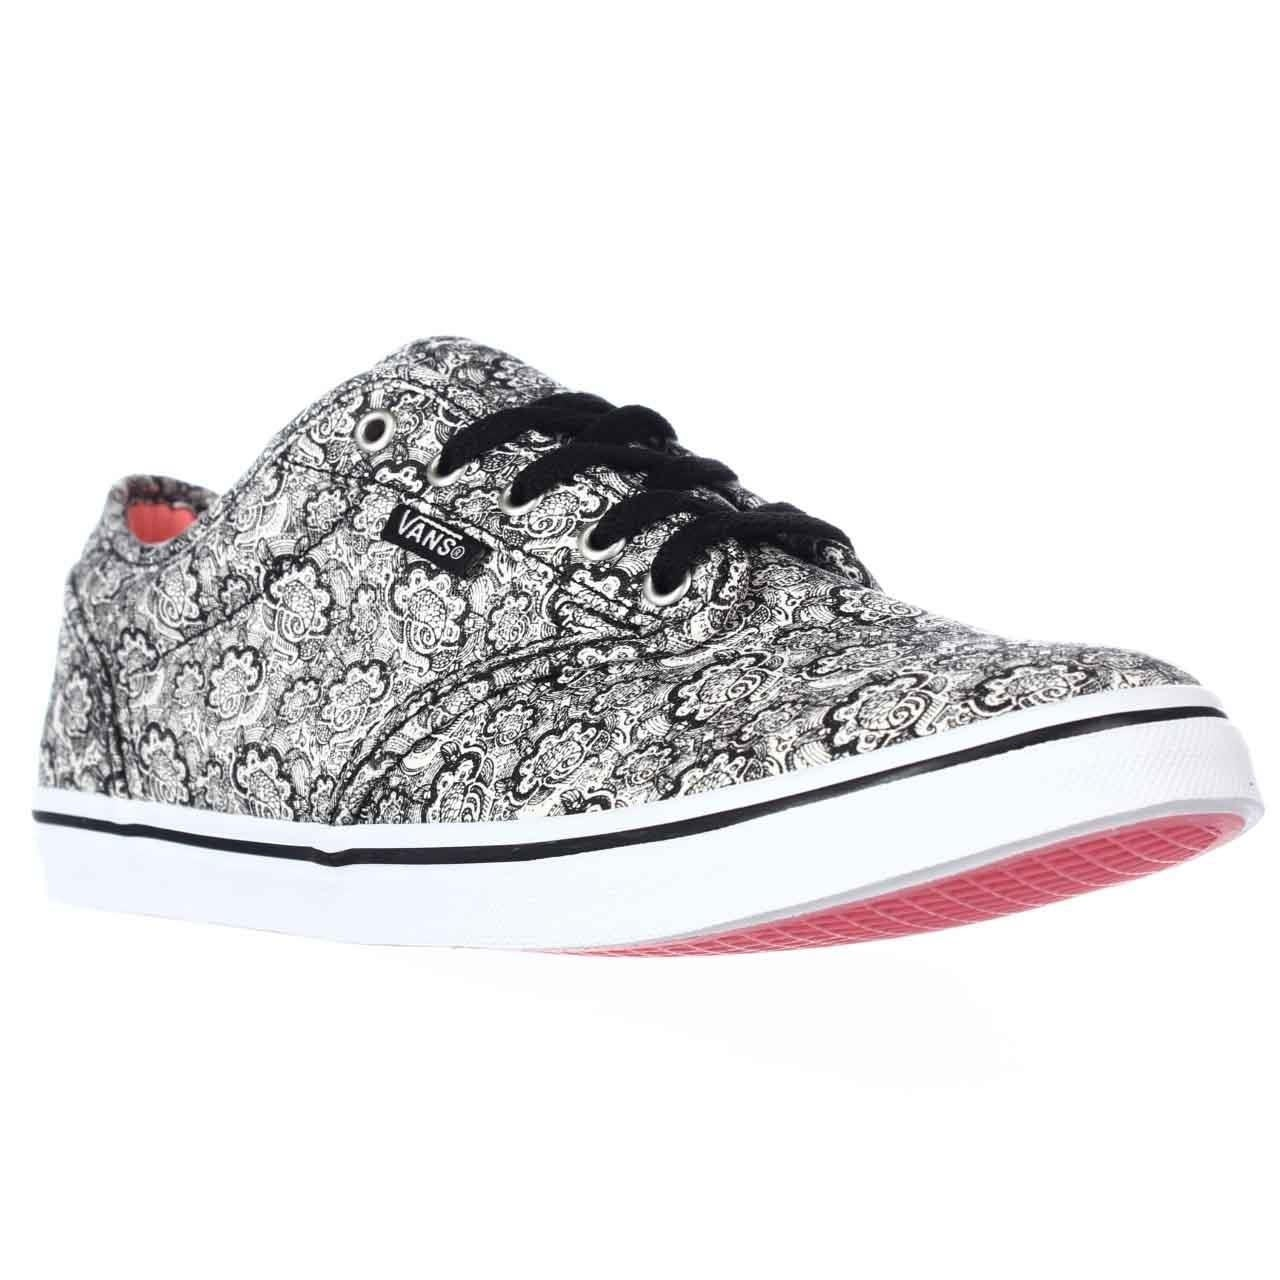 Vans Women s Shoes  7a7a2bba40